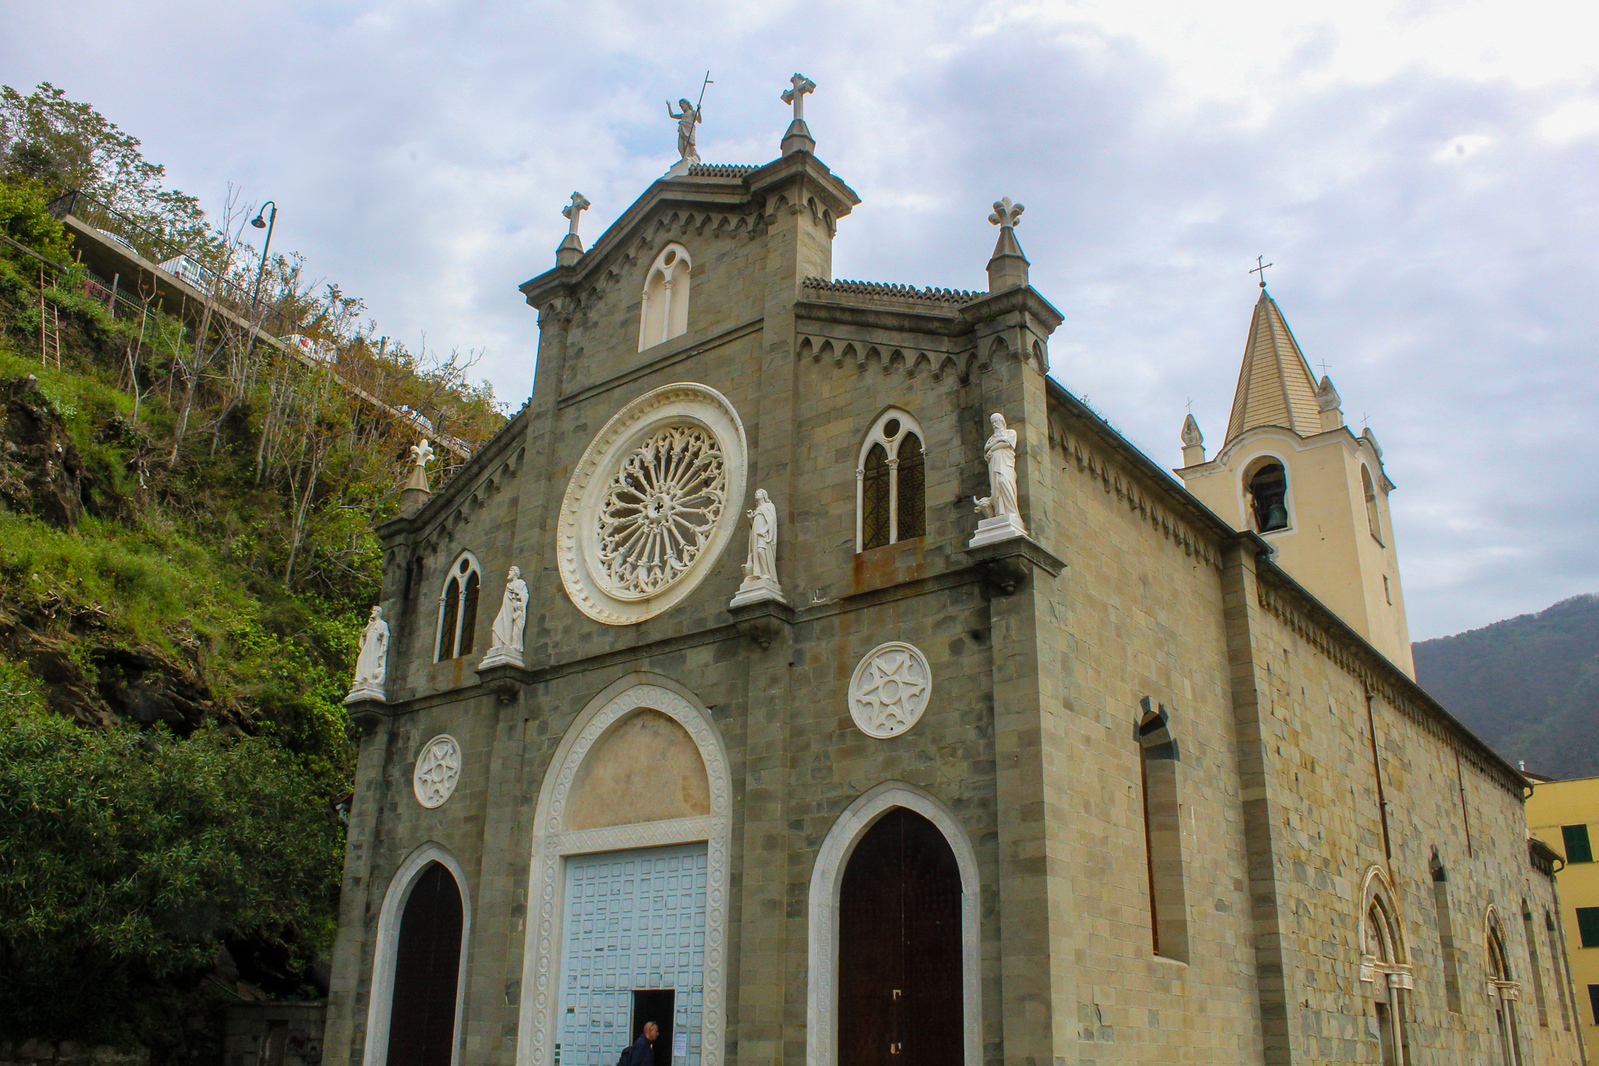 add the churches to your cinque terre itinerary